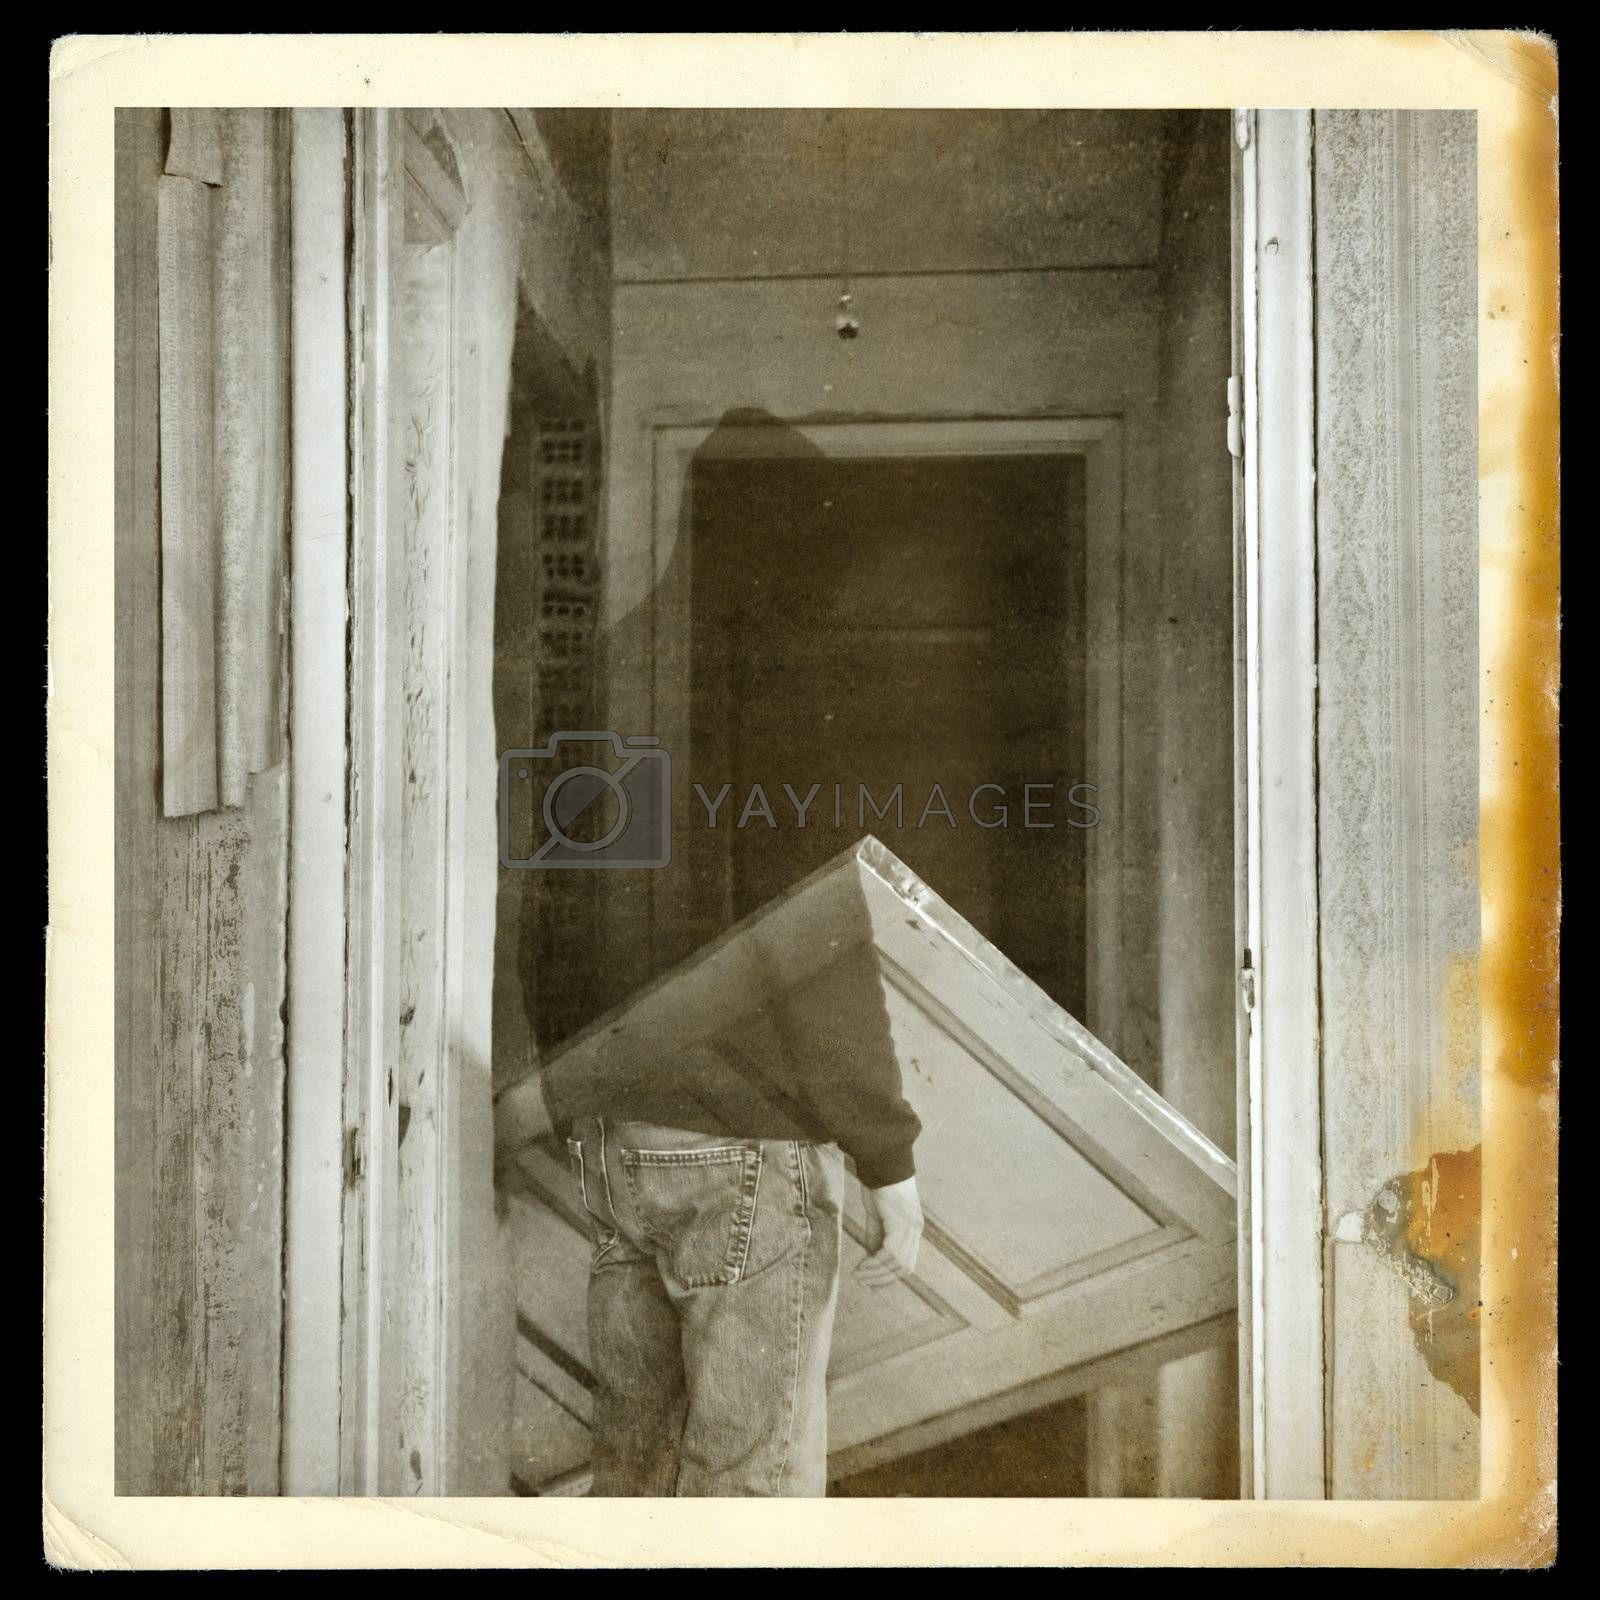 Vintage burned photograph of ghost in haunted hallways of an abandoned house.